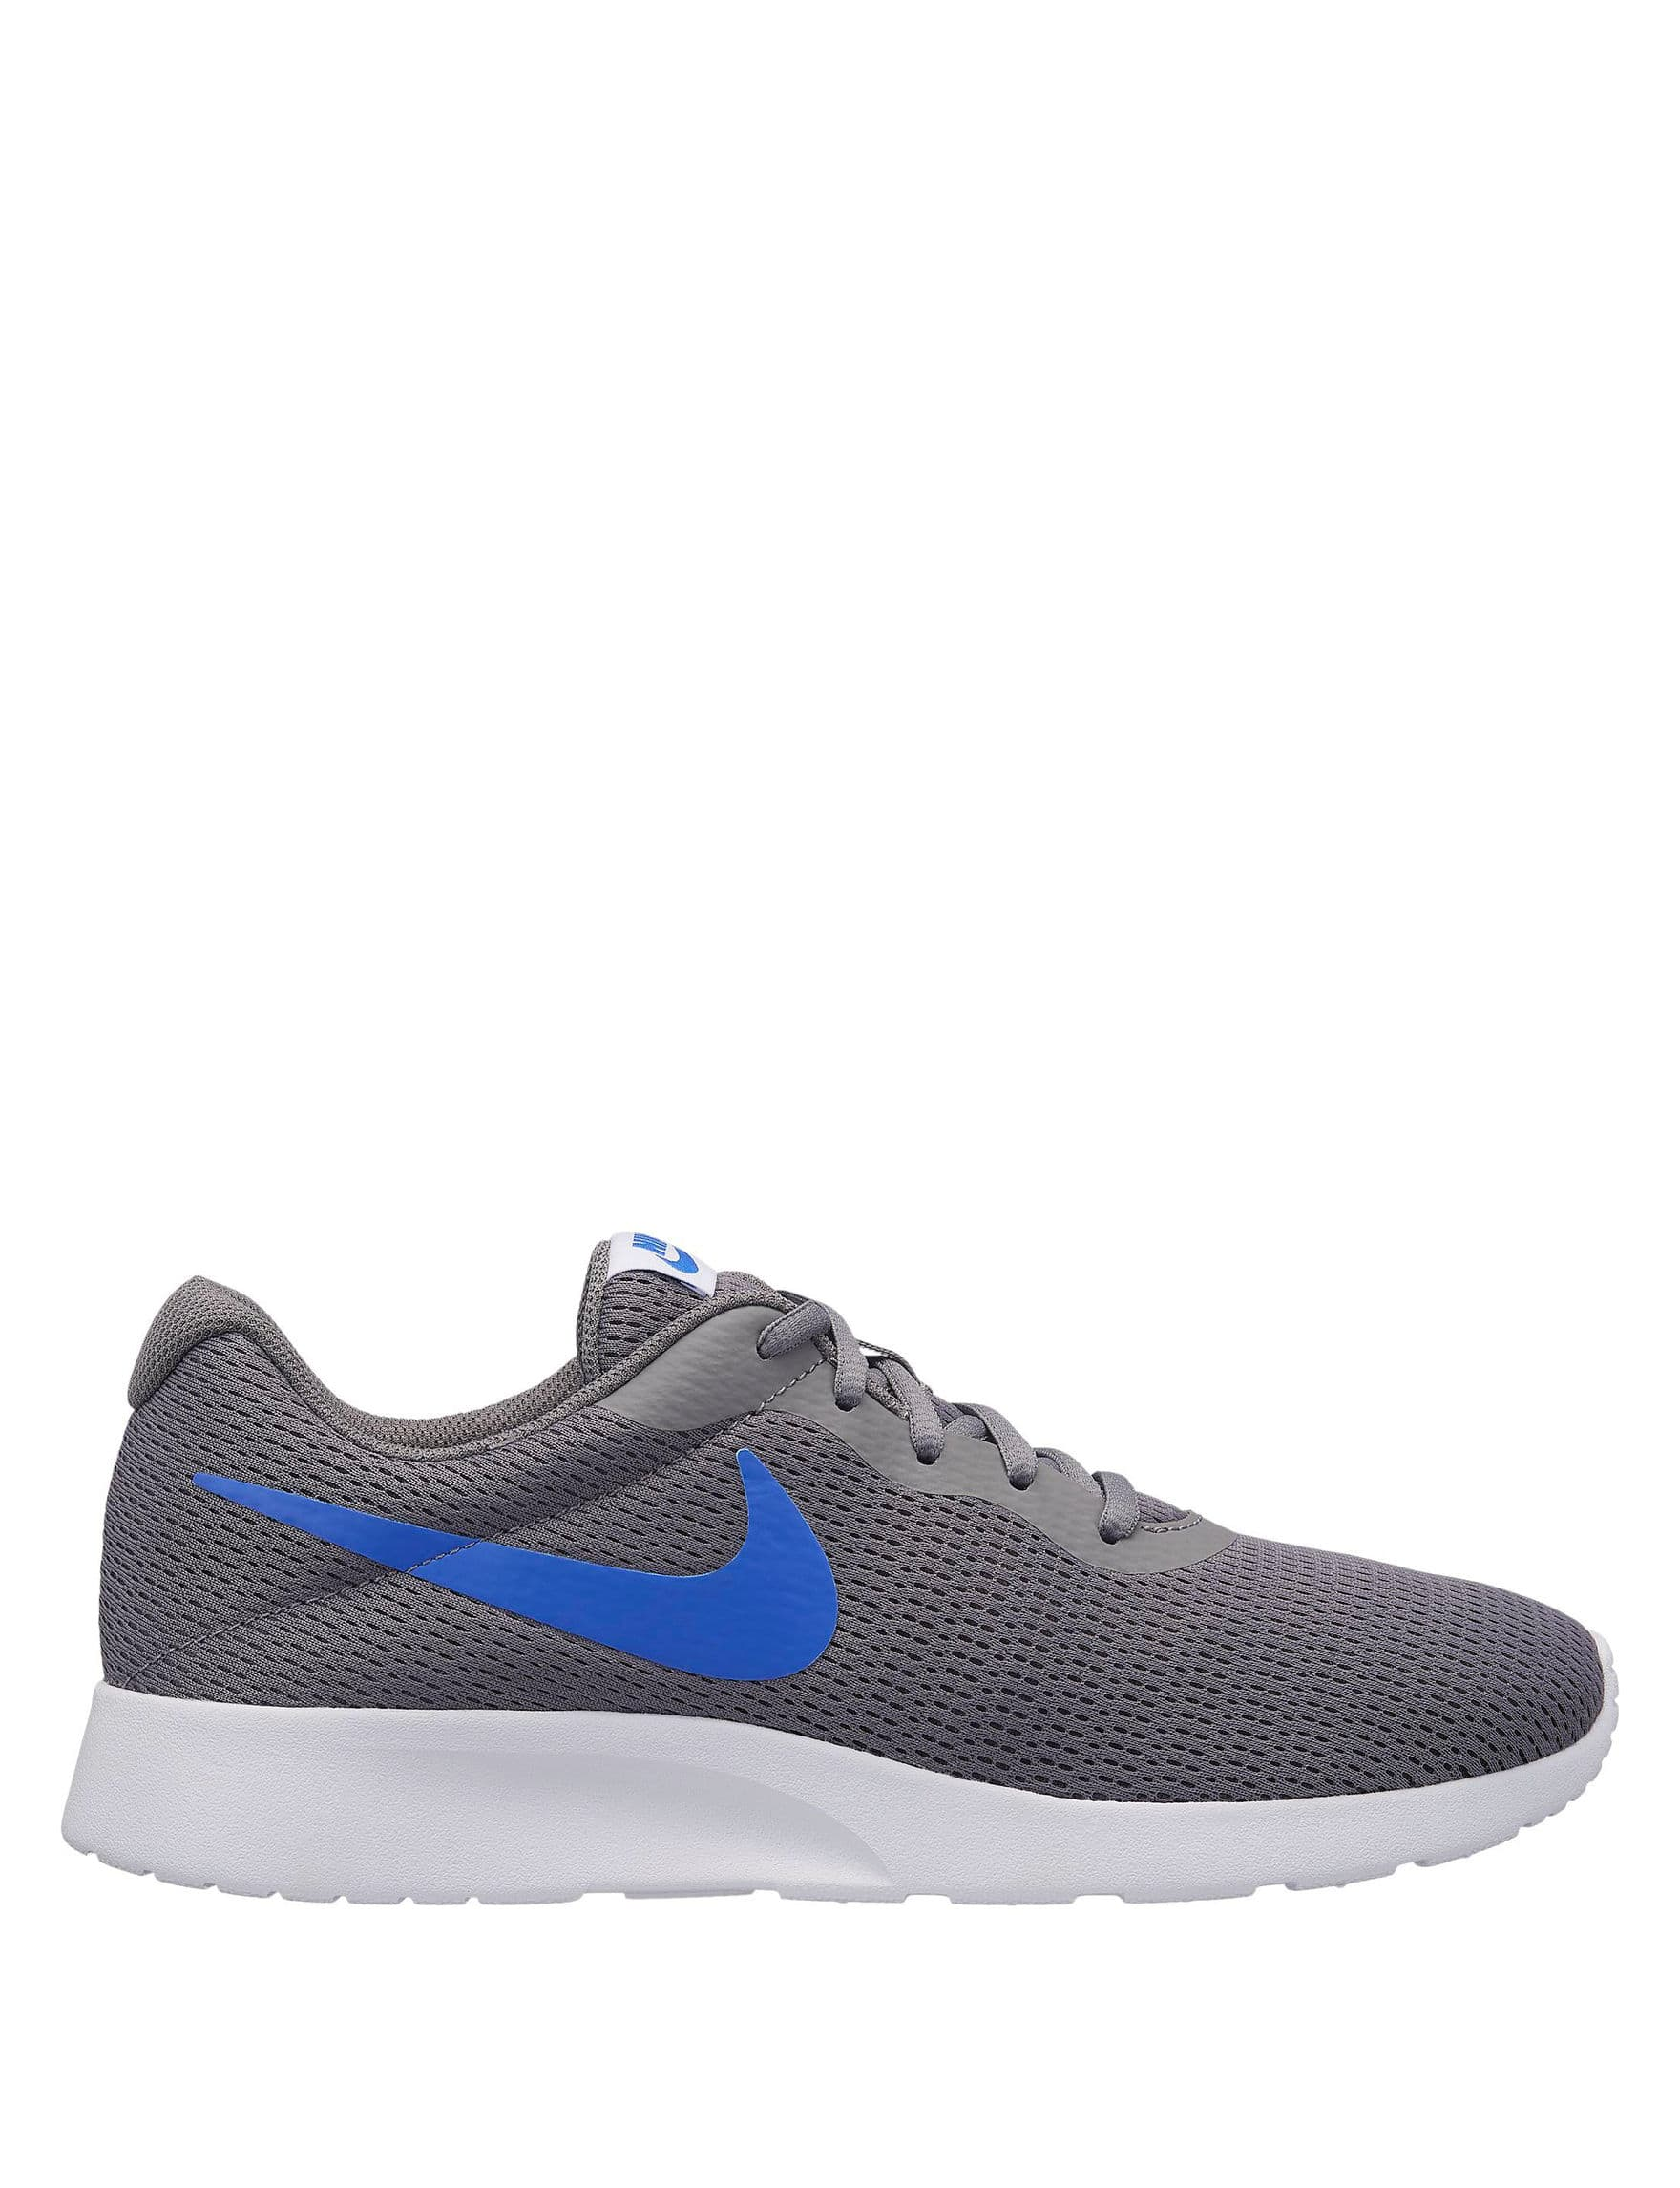 38429a6202bc19 Nike Men s Shoes  Tanjun Athletic Shoes or Flex Experience RN ...